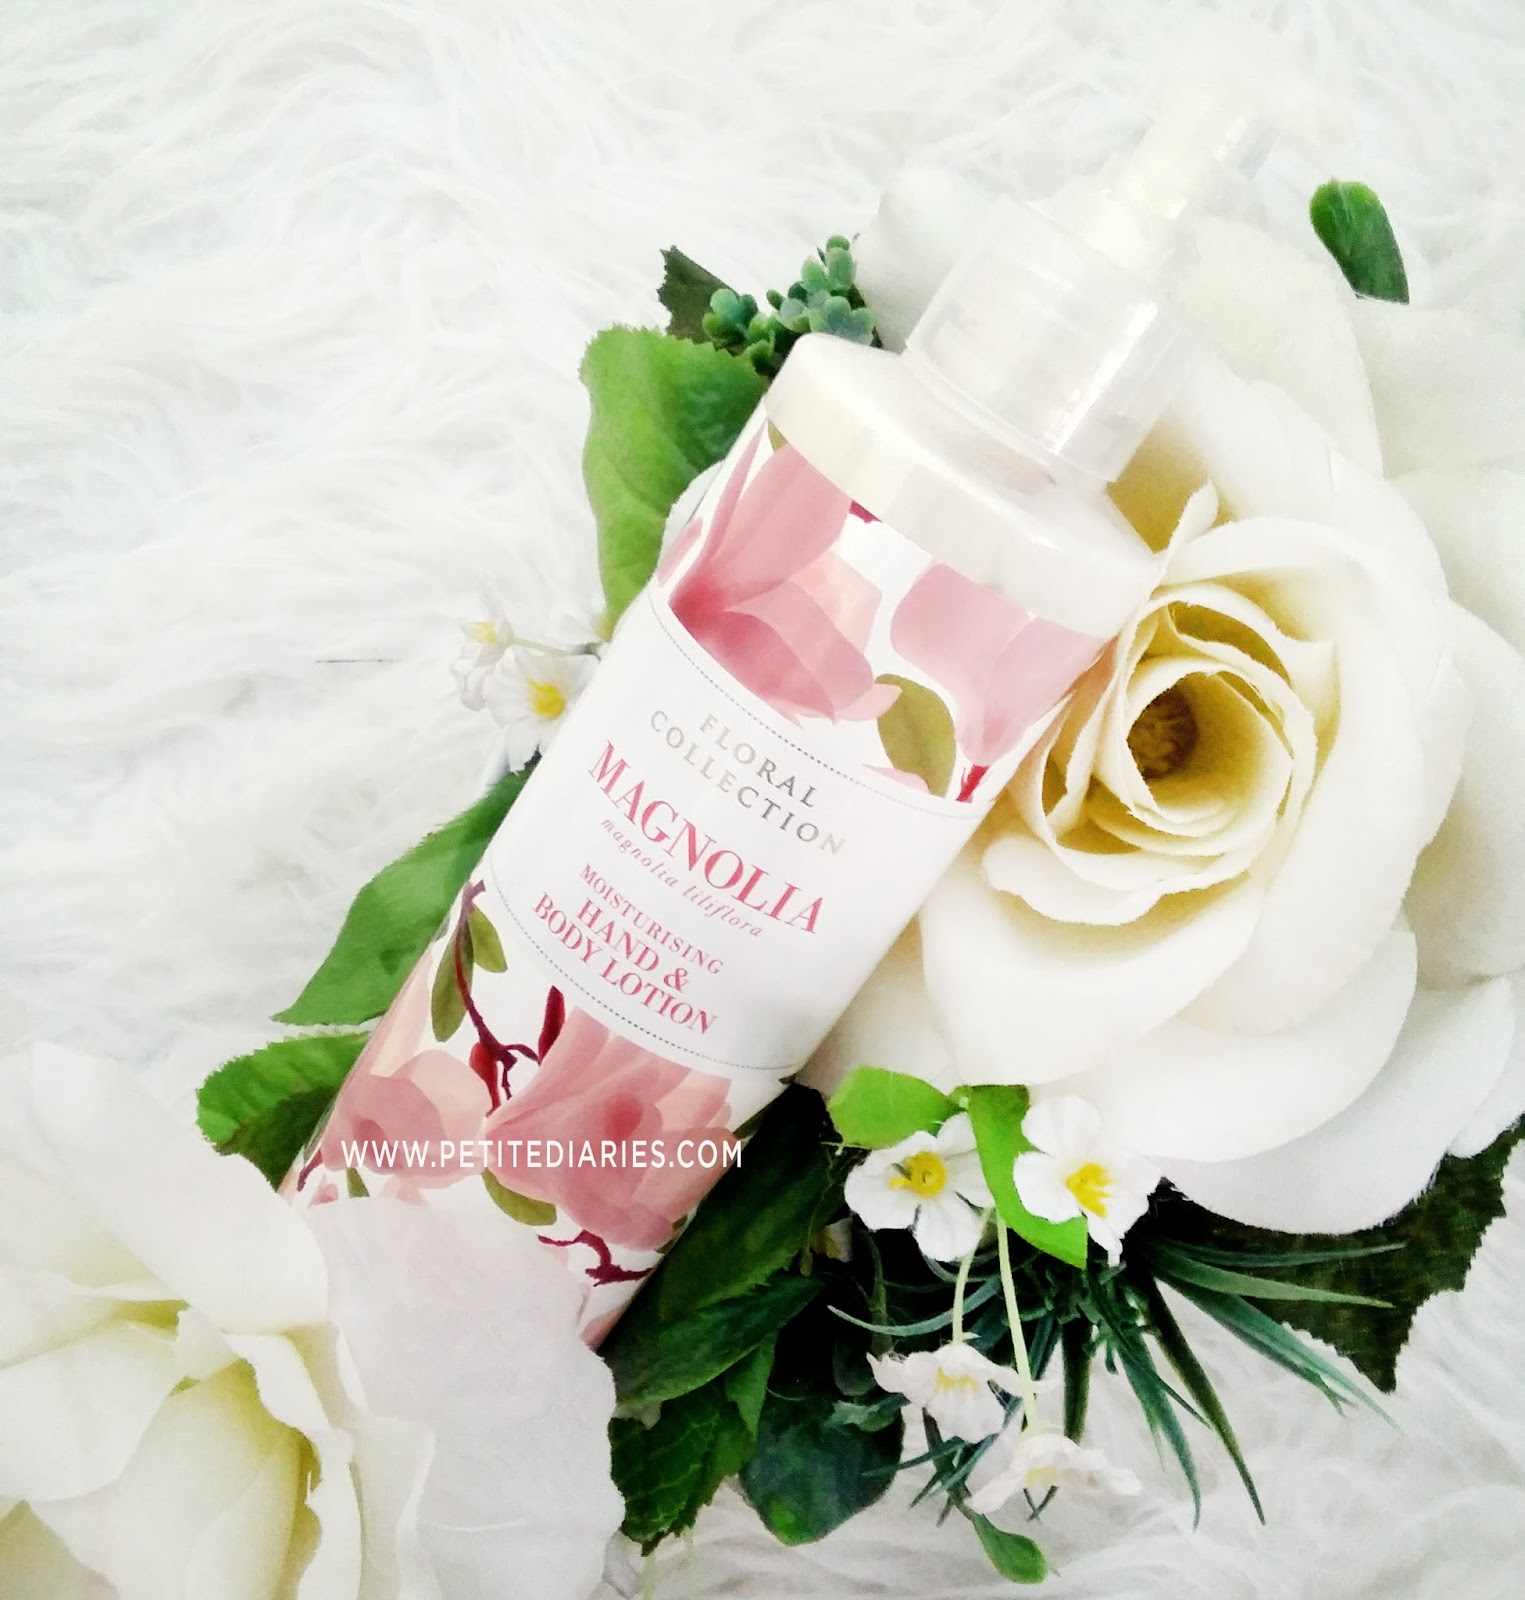 marks spencer cammelia body lotion review